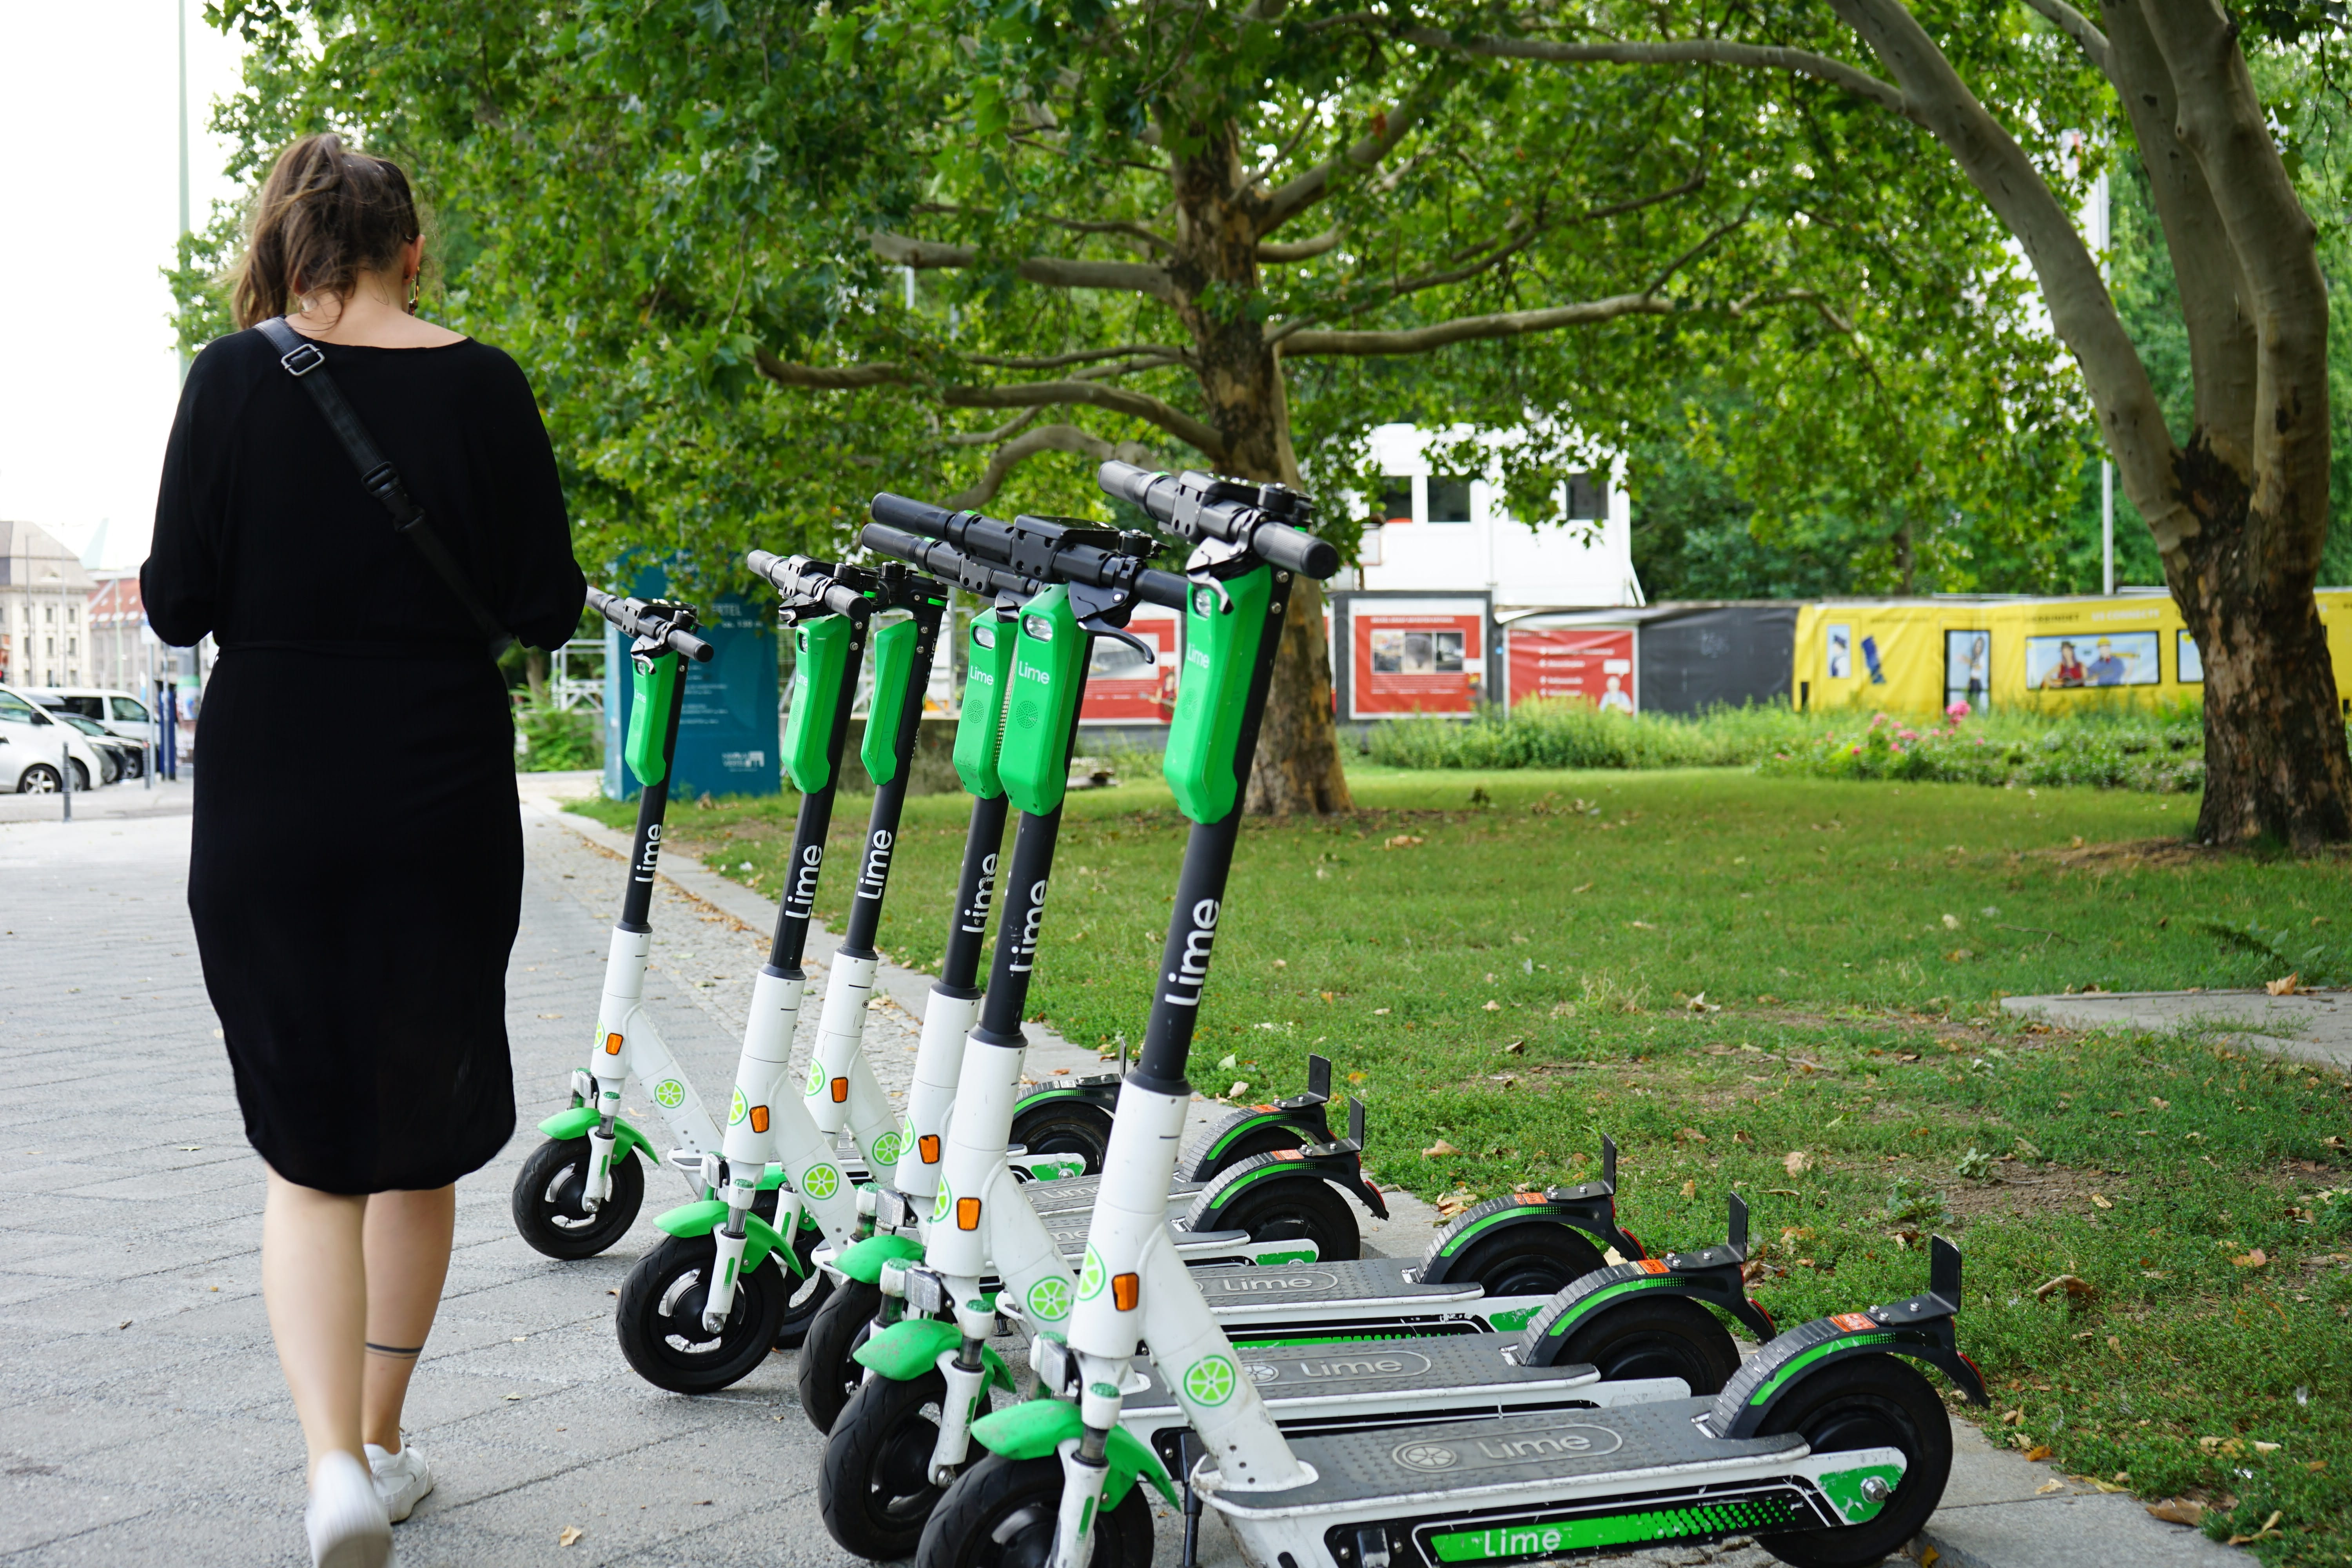 Woman walking past row of Lime eScooters; image by Vince Jacob; via Unsplash.com.